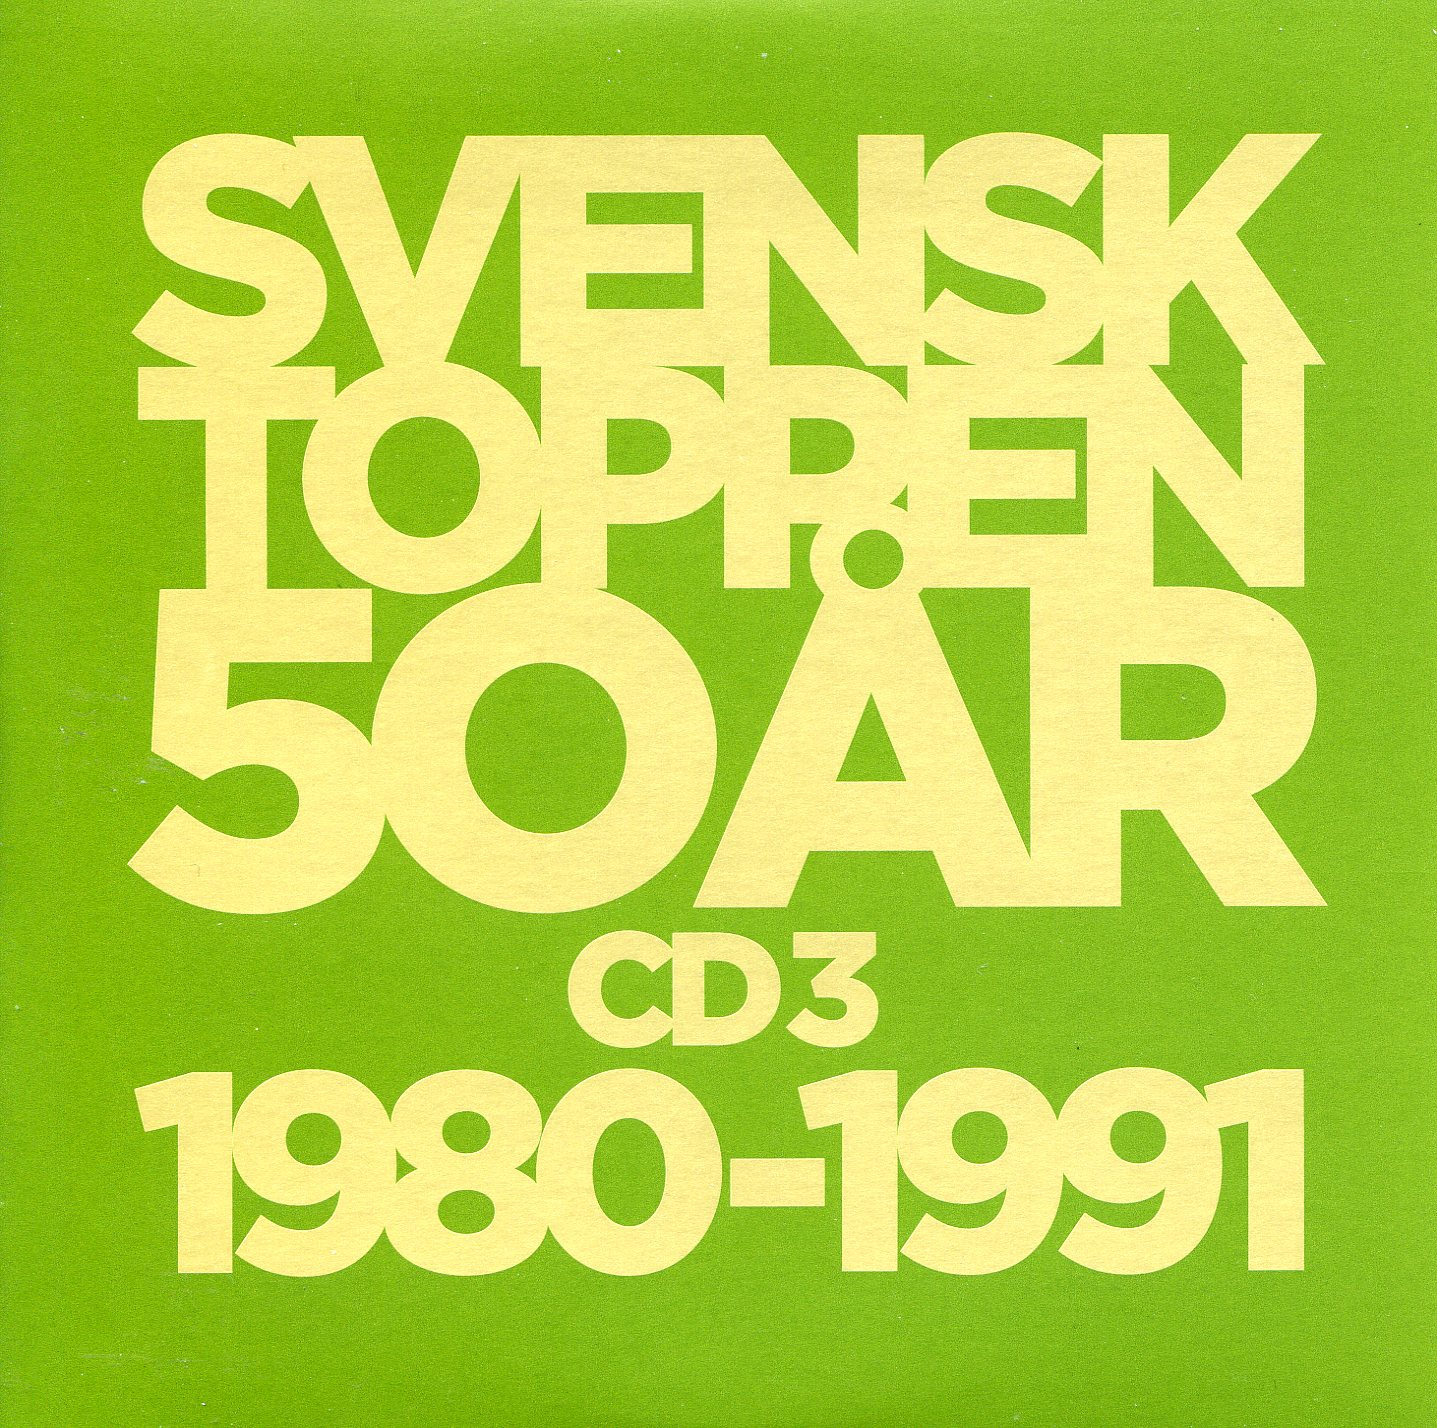 cd svensktoppen 50 år COVERS.BOX.SK ::: svensktoppen 50  r   5cd box (2012) cd 3   high  cd svensktoppen 50 år